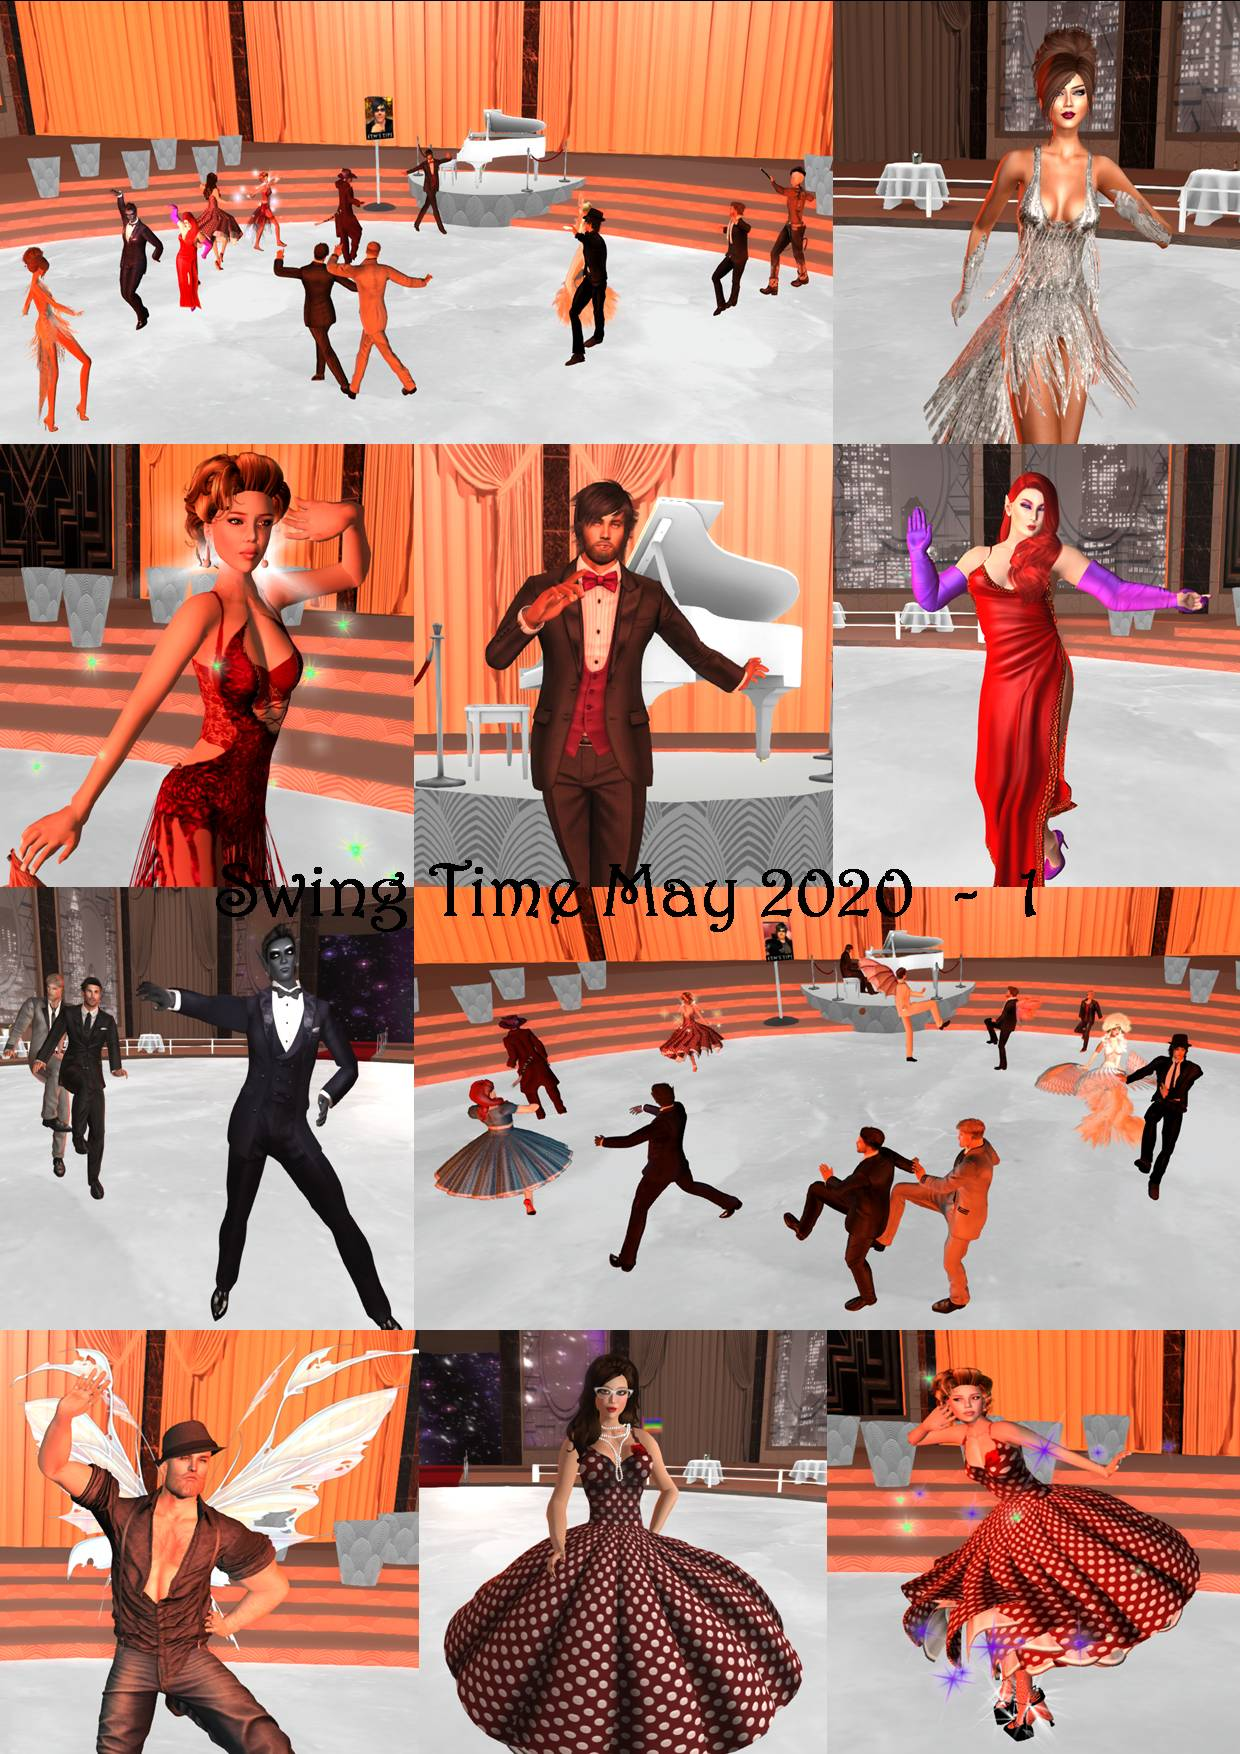 SWING TIME COLLAGE MAY 2020 - 1